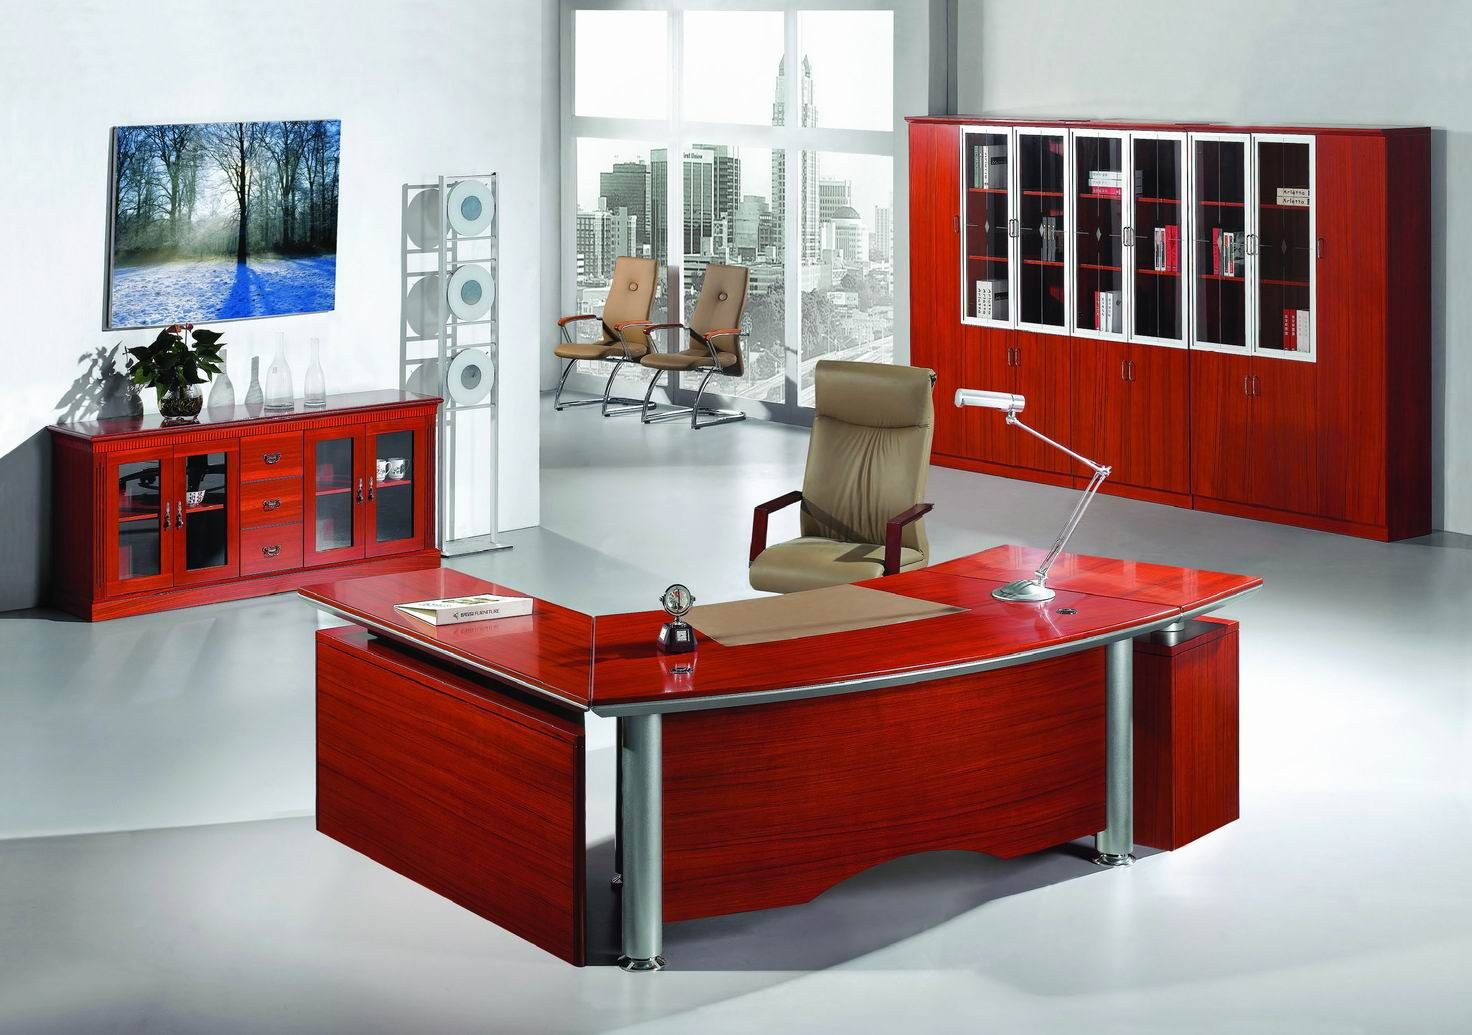 office furniture pics. The Office Furniture Has Become An Important Part In Maintaining Any Kind Of Structure. Pics